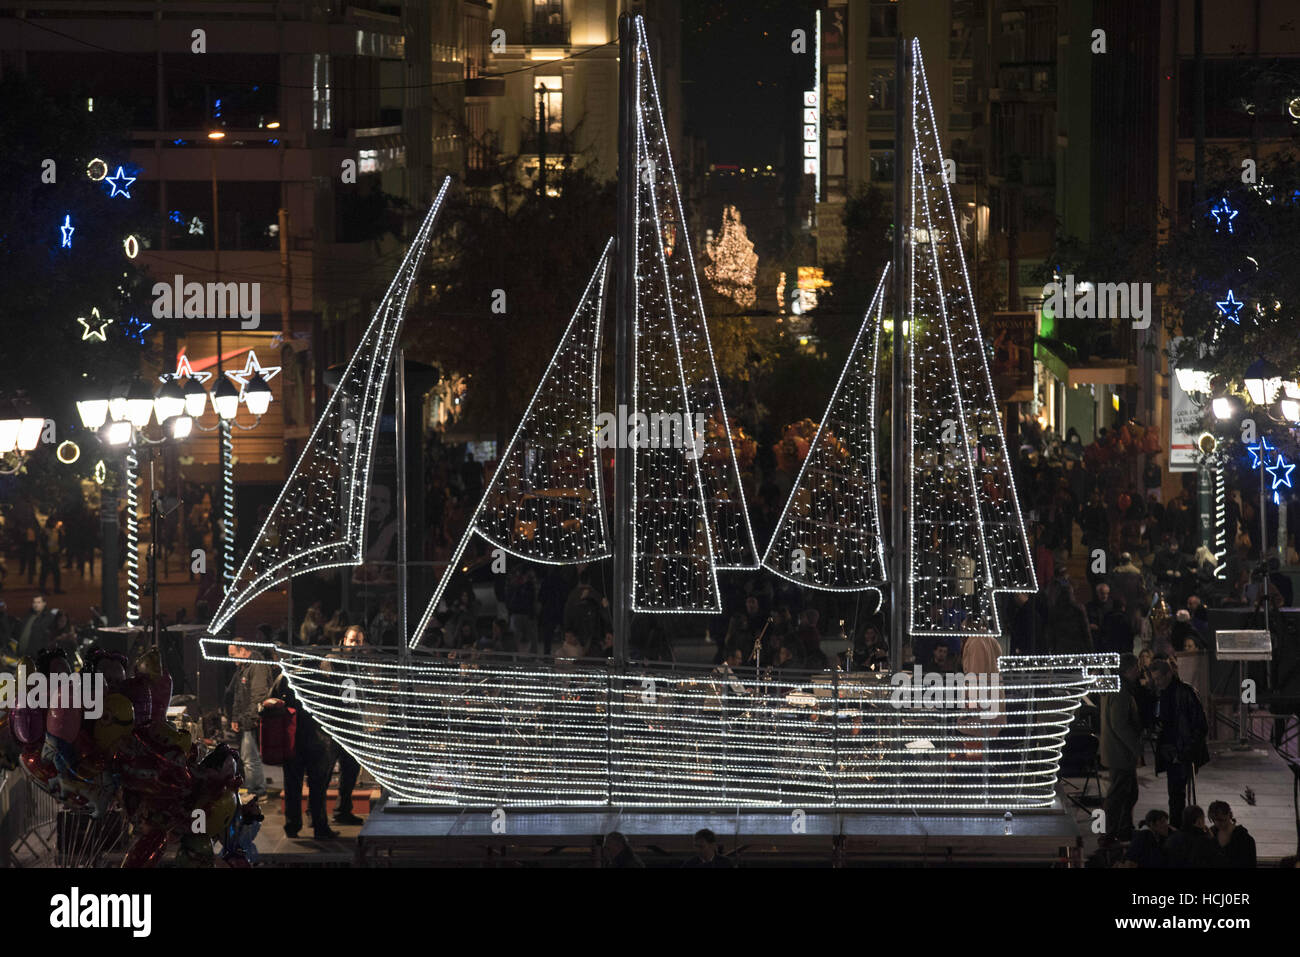 Christmas Boat Greece.Athens Greece 9th Dec 2016 Although Christmas Trees Are